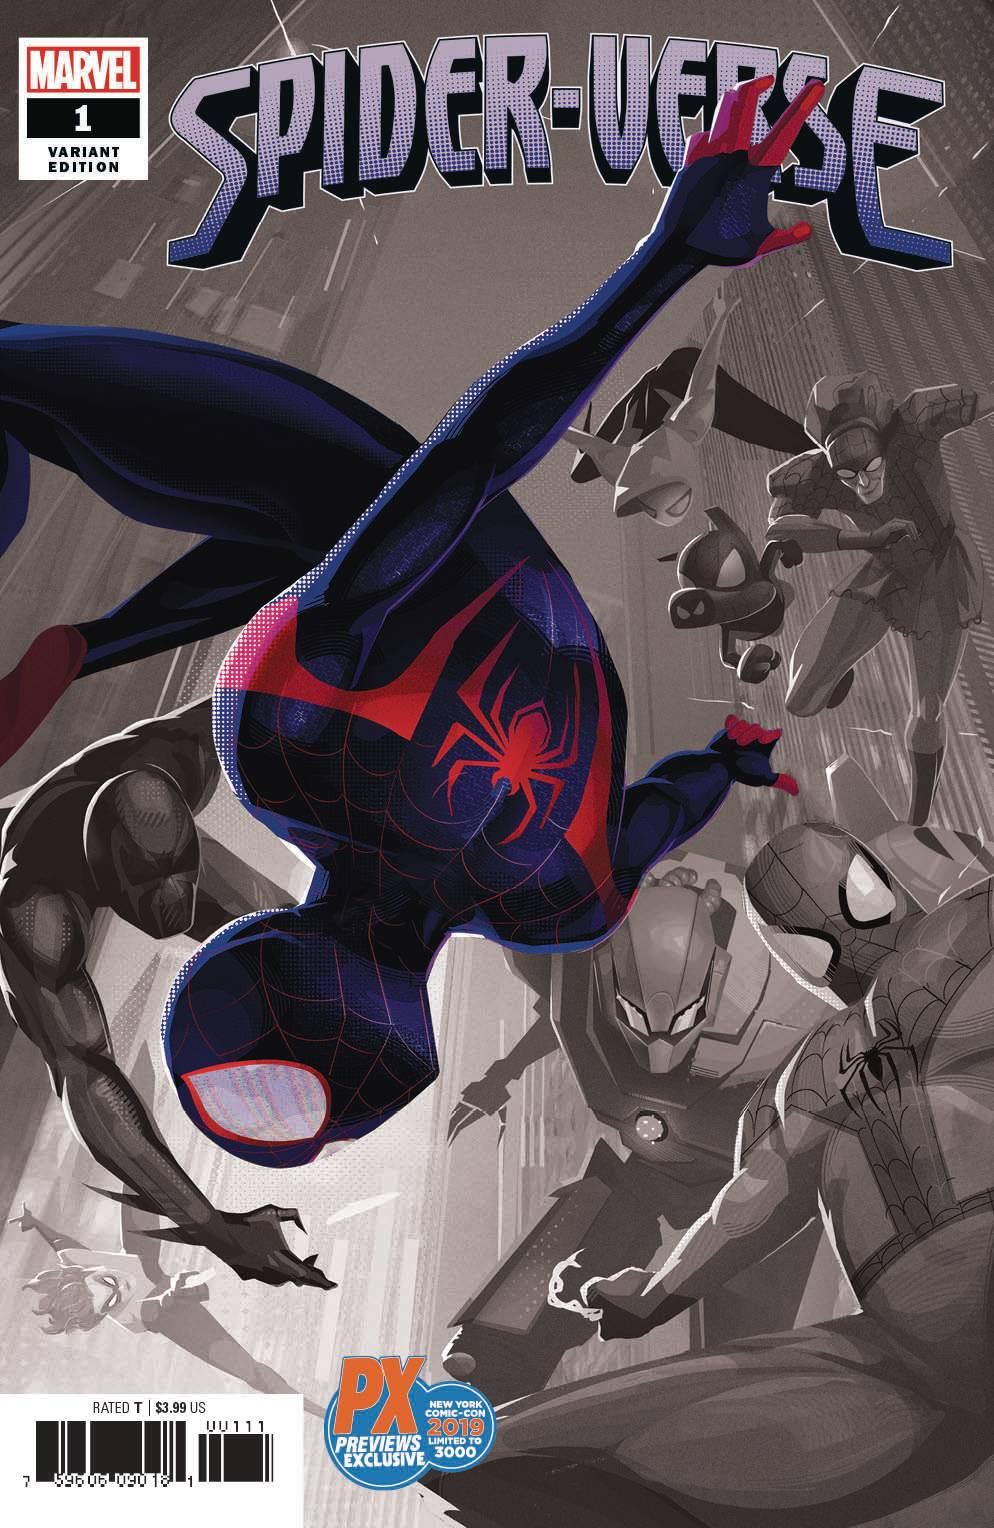 NYCC 2019 SPIDER-VERSE #1 (OF 6) DALIT VARIANT 10/09/19